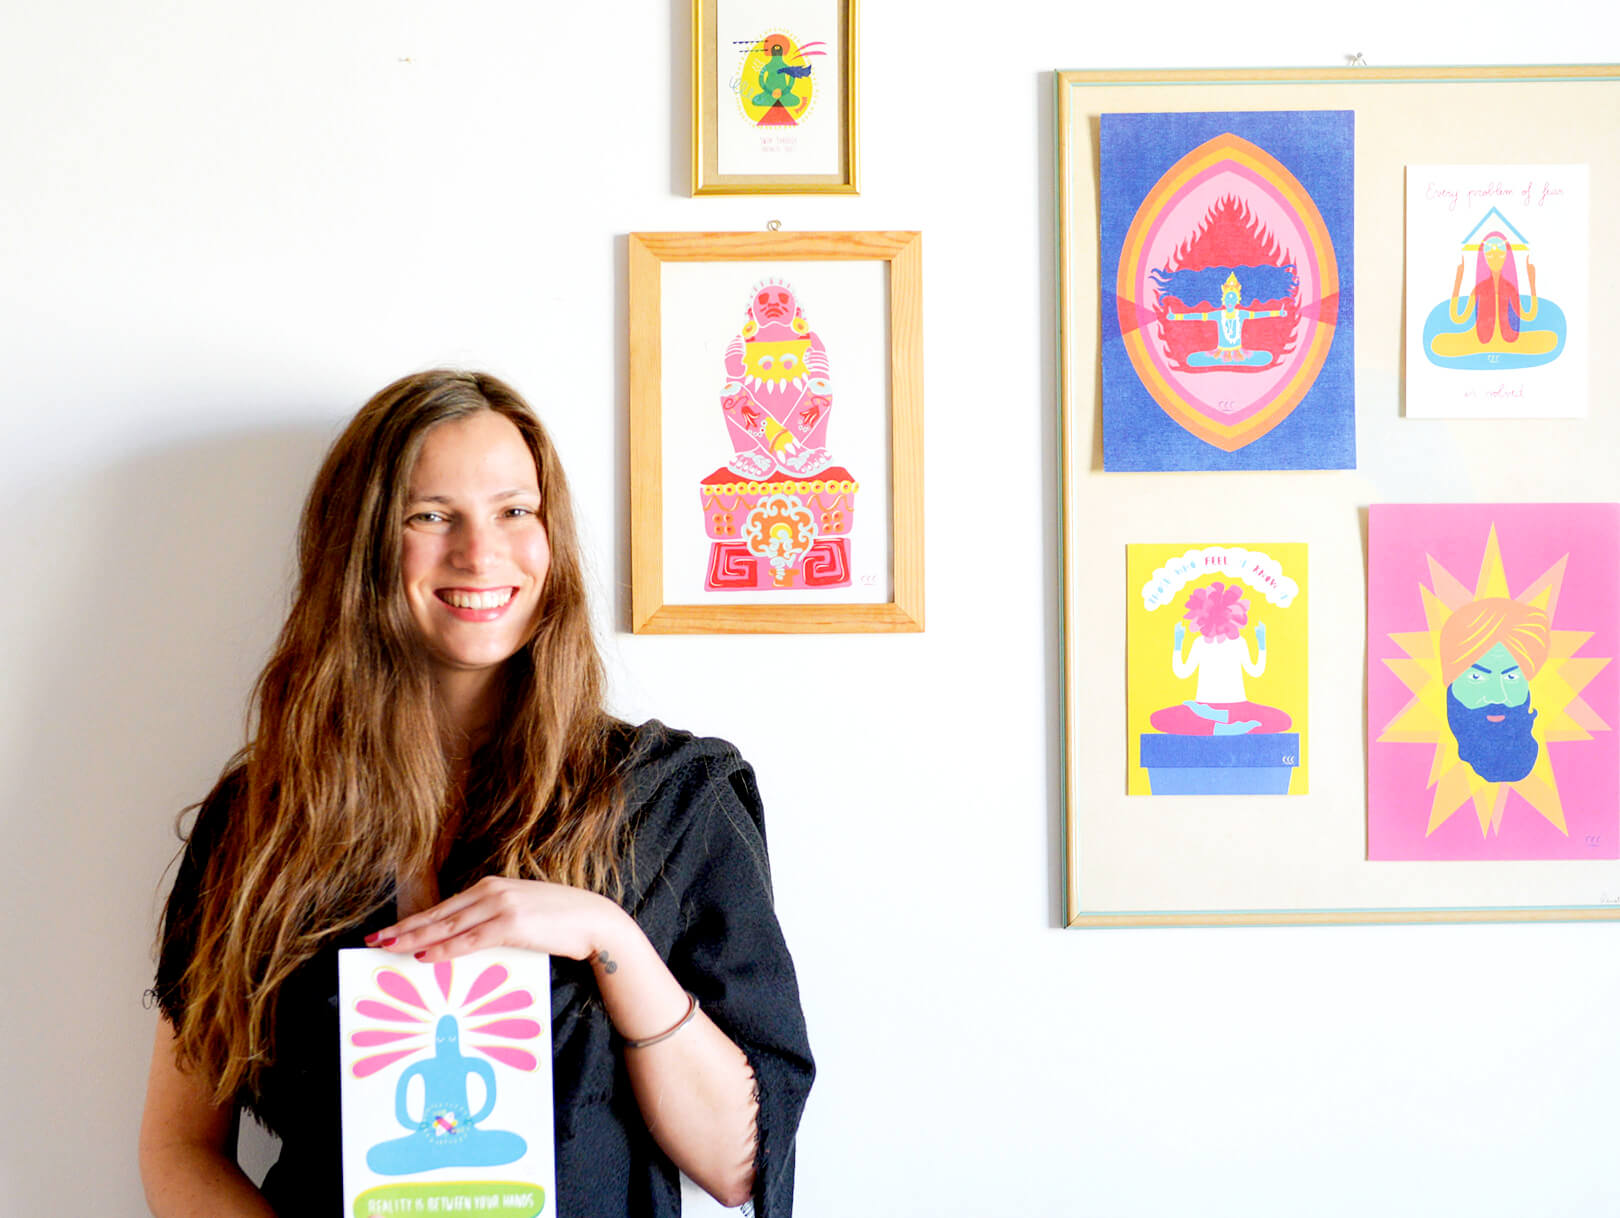 indiangoodsco_blog_naturalbeauty interviews_illustrator costanza coletti_1